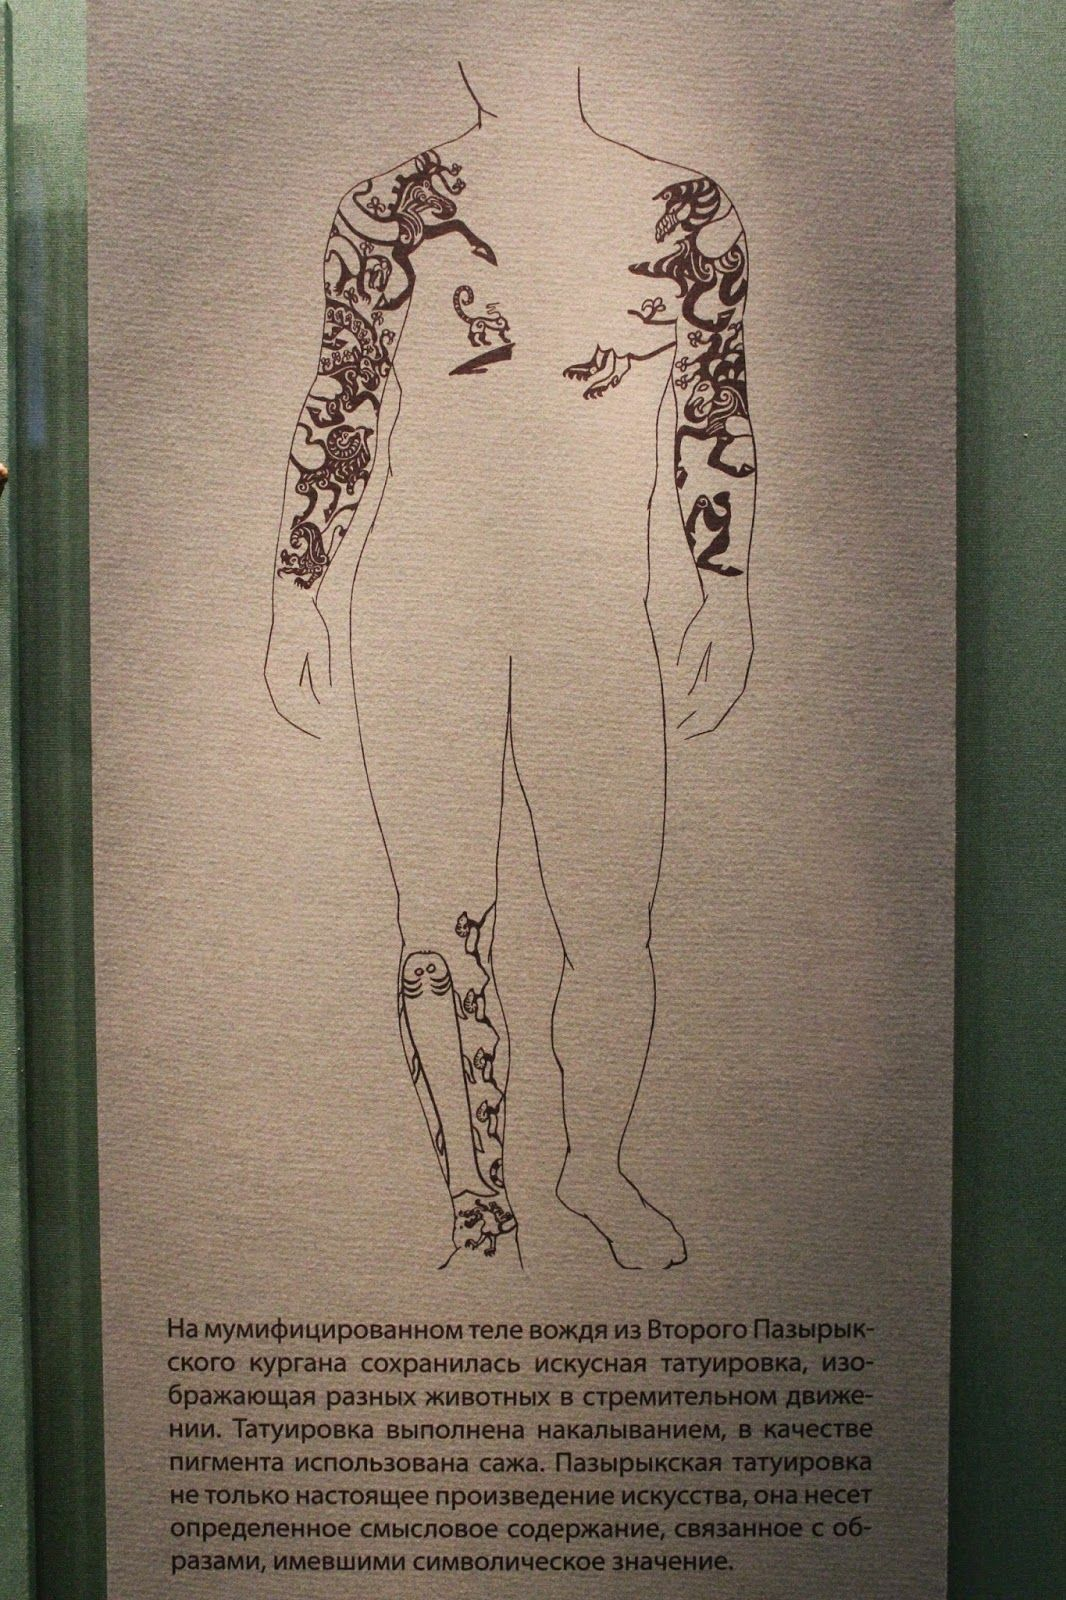 Canadian scientist decorated the body with tattoos from the body of a 2500-year-old mummy of the Scythian